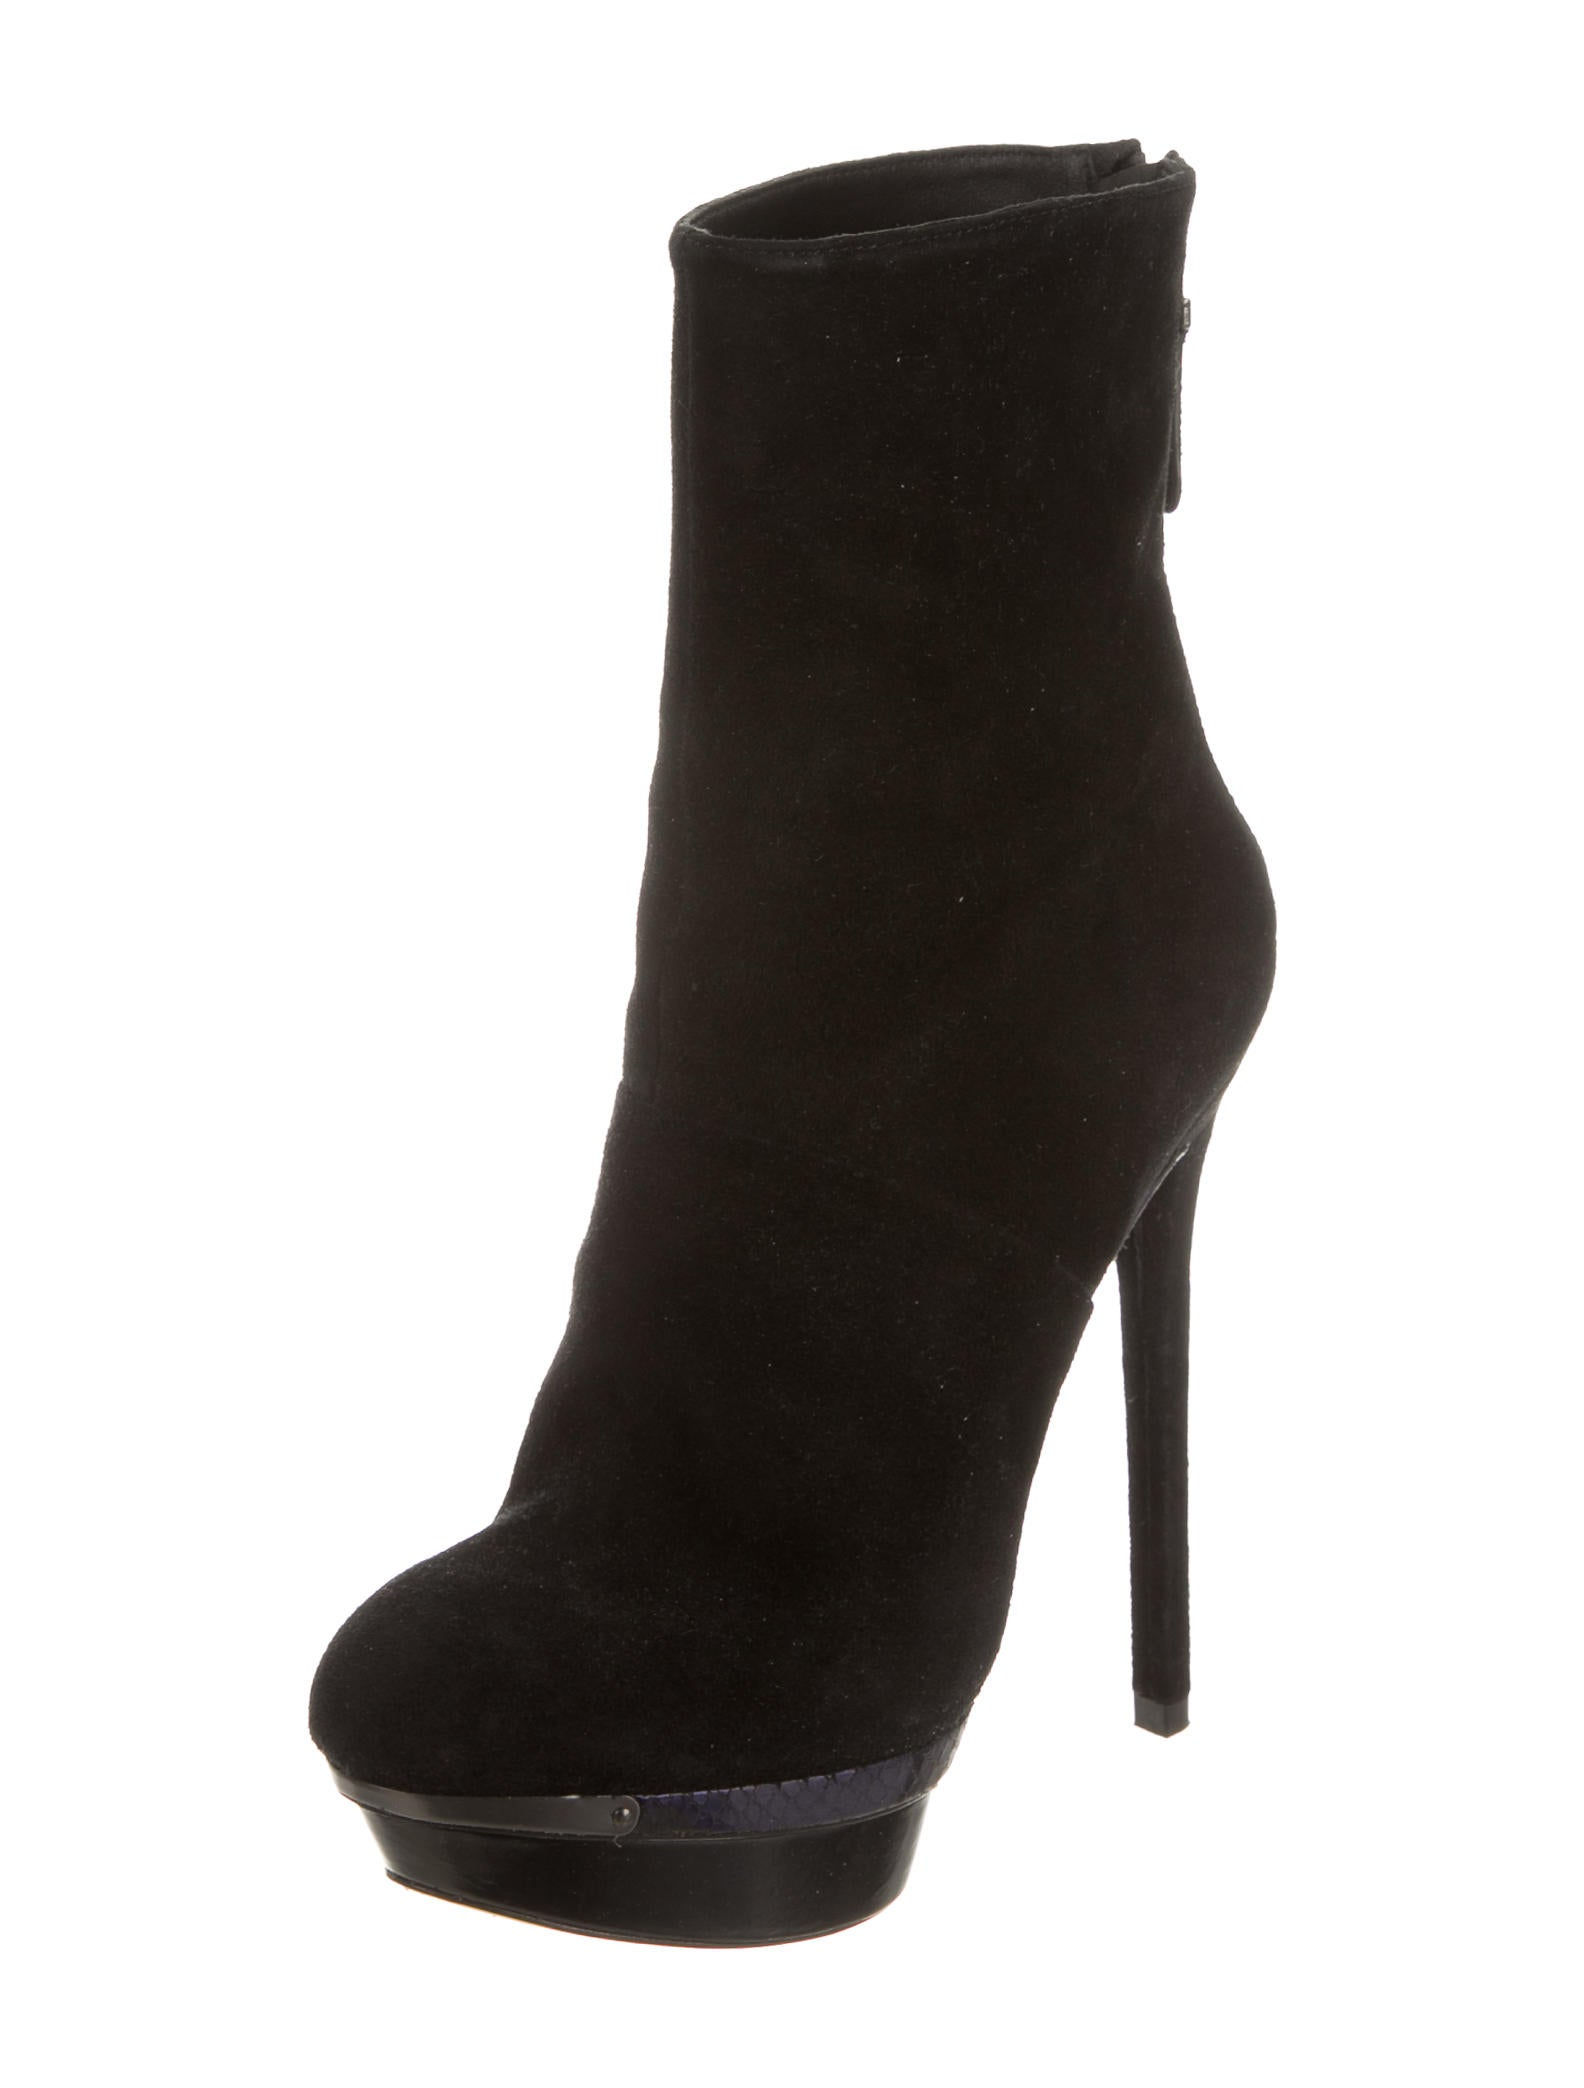 b brian atwood suede platform booties shoes wbn21614